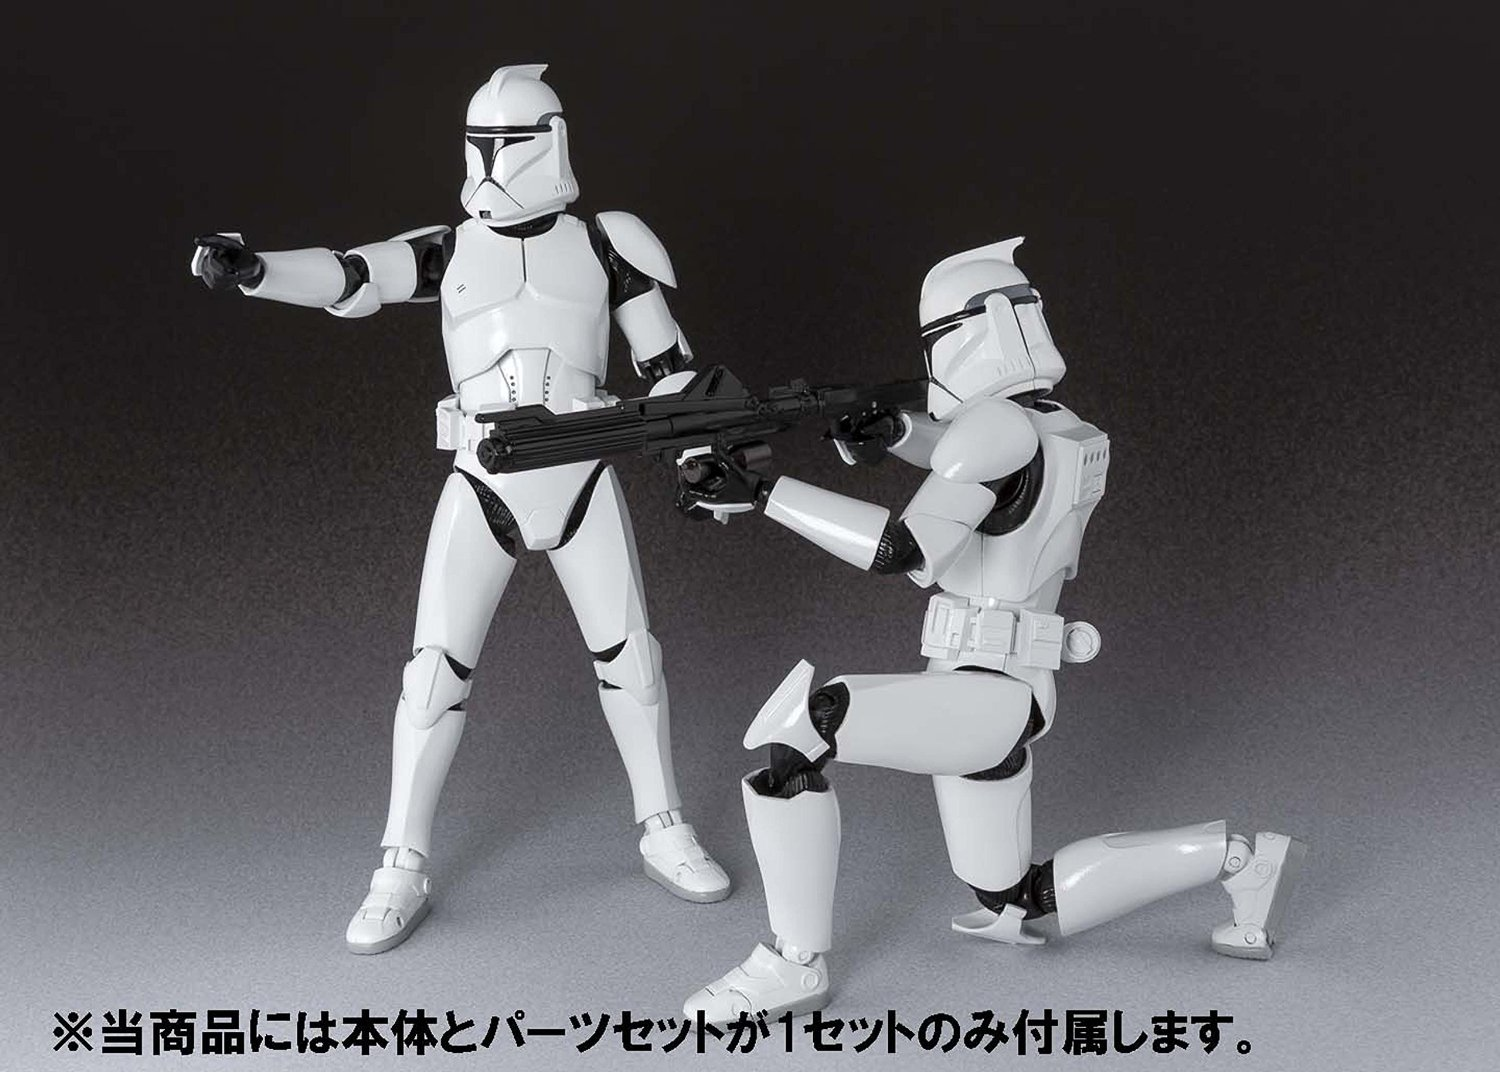 Clone Trooper Phase1 Star Wars S.H. Figuarts Bandai